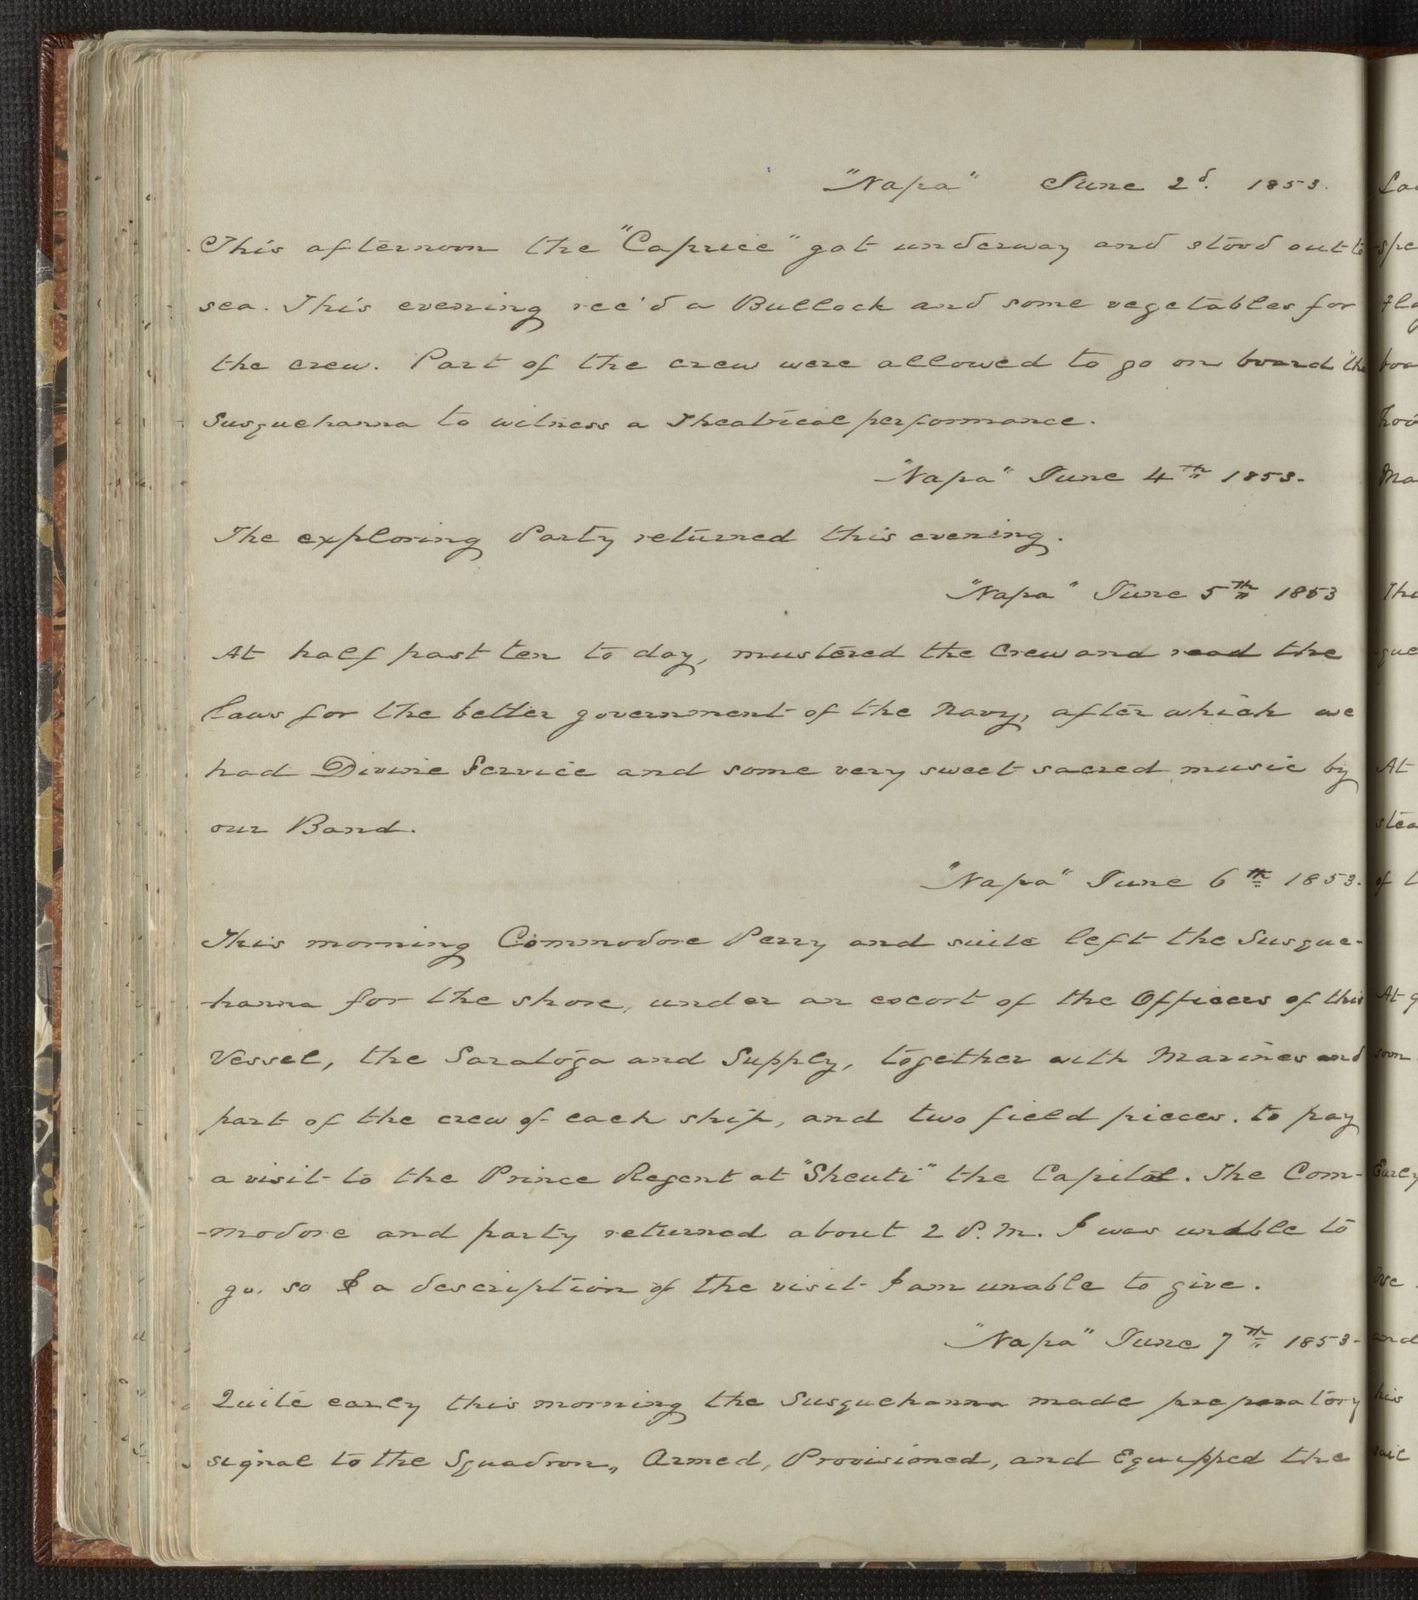 William Speiden journals: Vol. 1, Mar. 9, 1852-July 2, 1854 (includes newspaper clippings from 1901 and 1946)